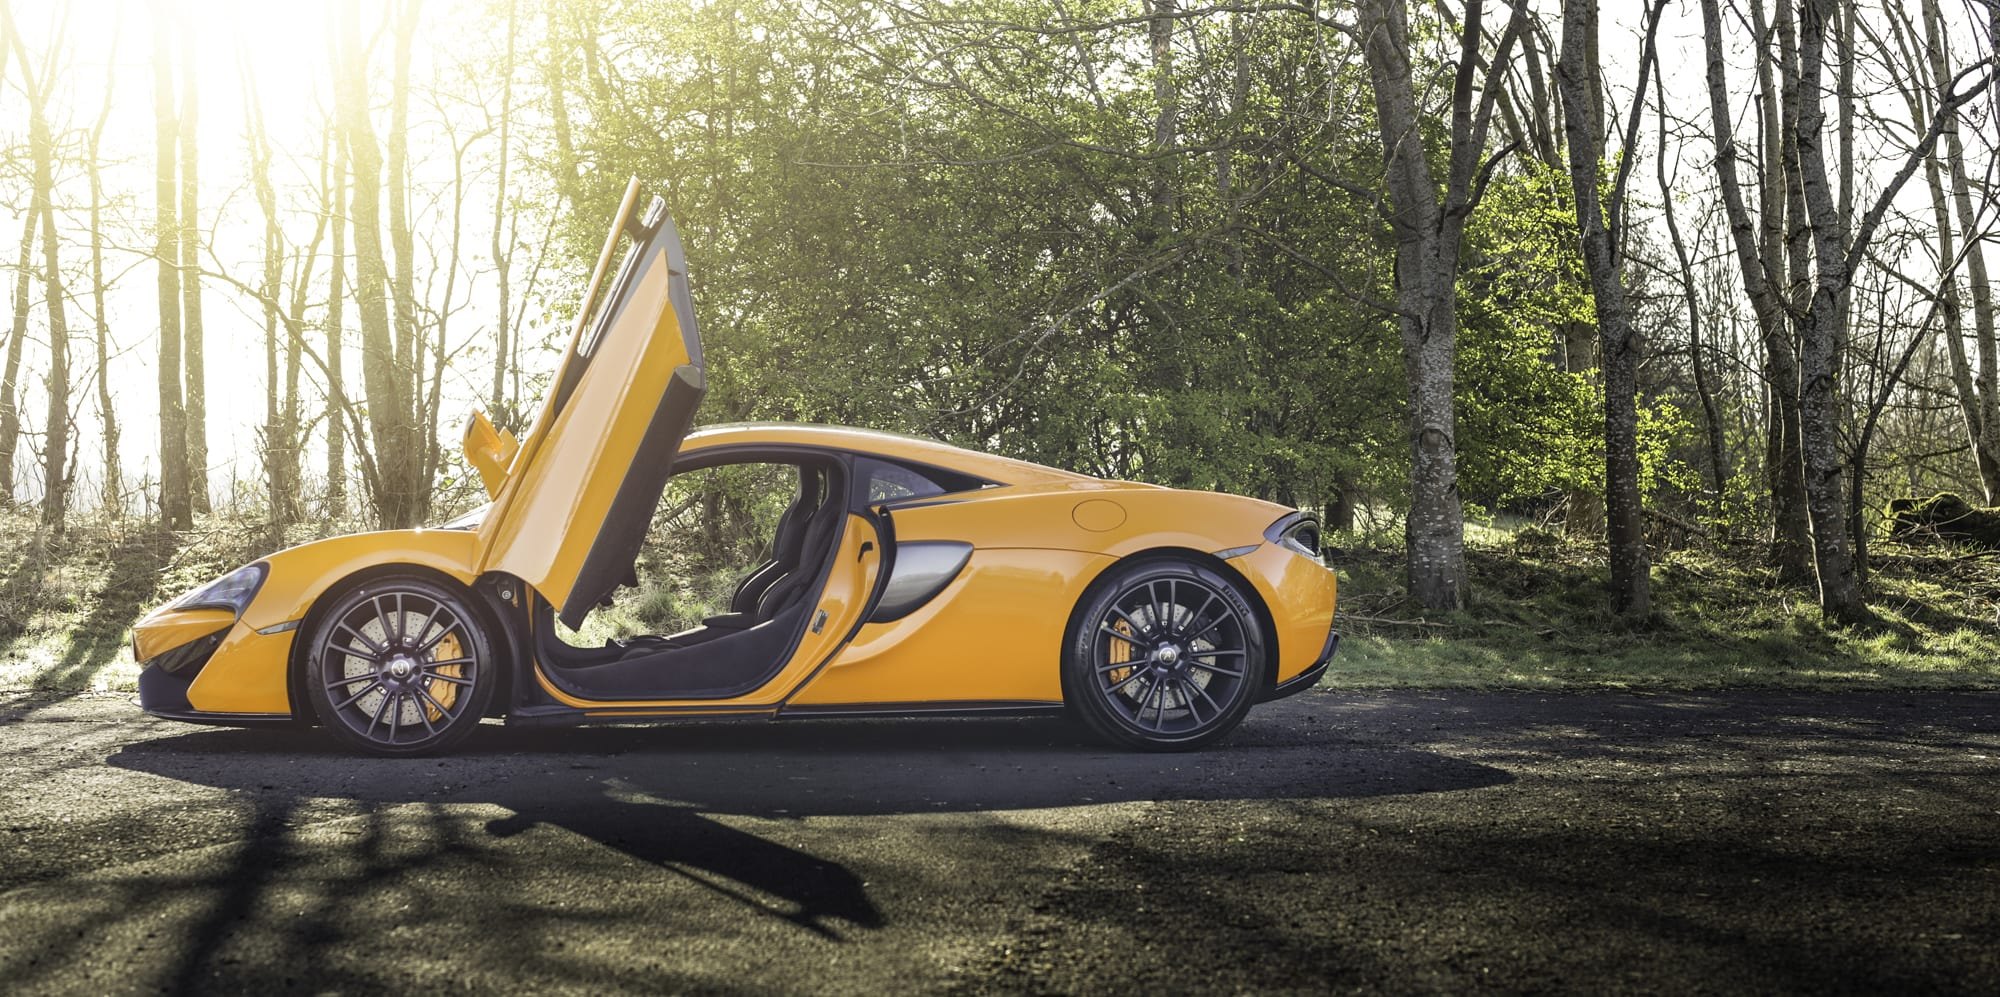 10 MOST-FINA-NCED-supercars-SCD JCT600 Dealer Drive-13